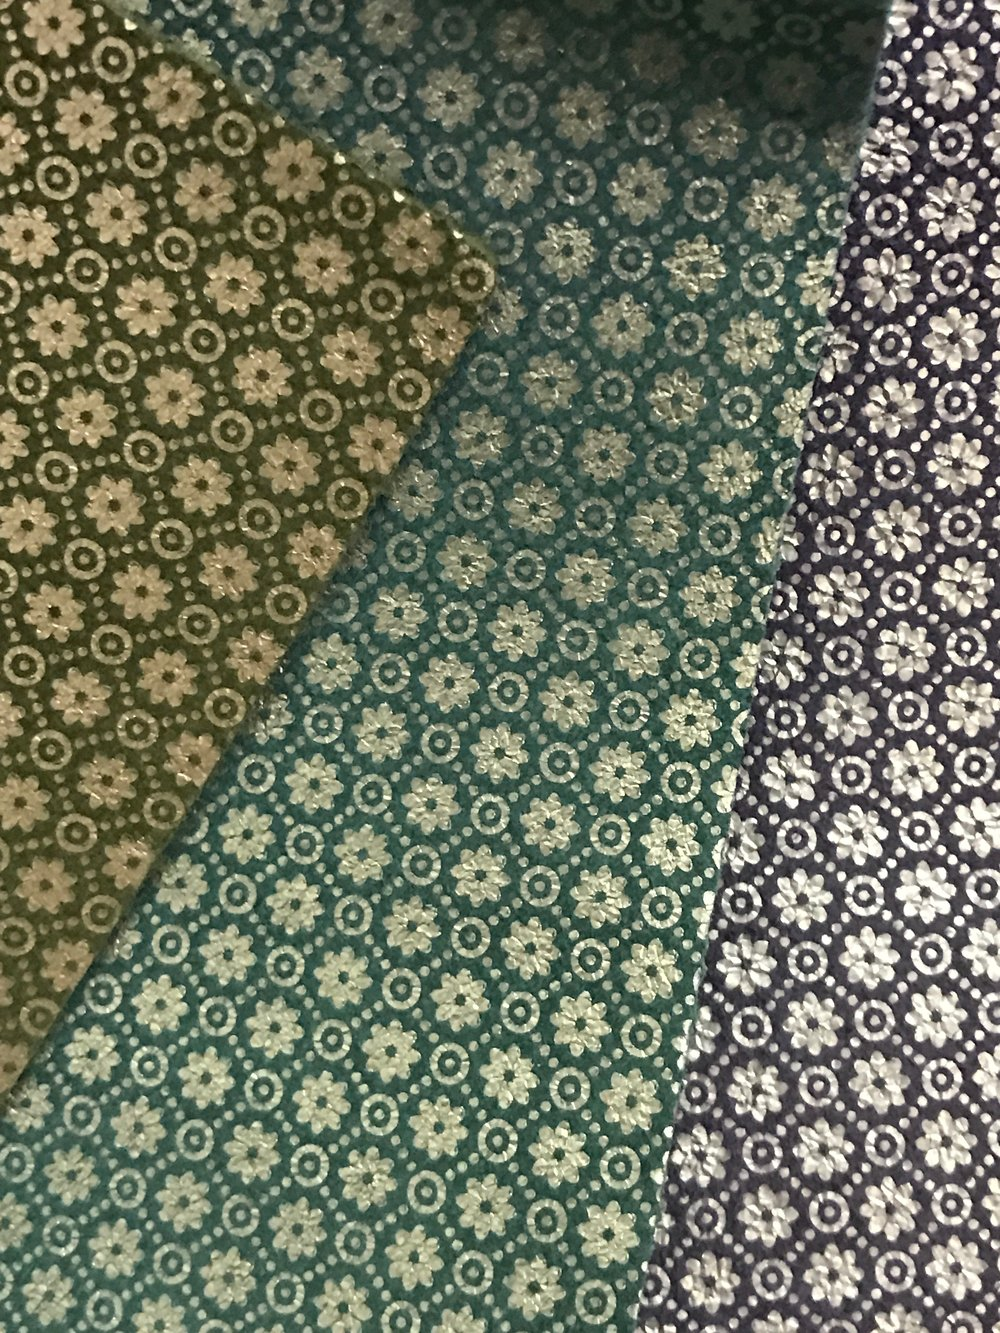 NEW! Vincent Van Floral Collection. available in Peridot Green, Peacock & Indigo Suede leather with metallic effect!